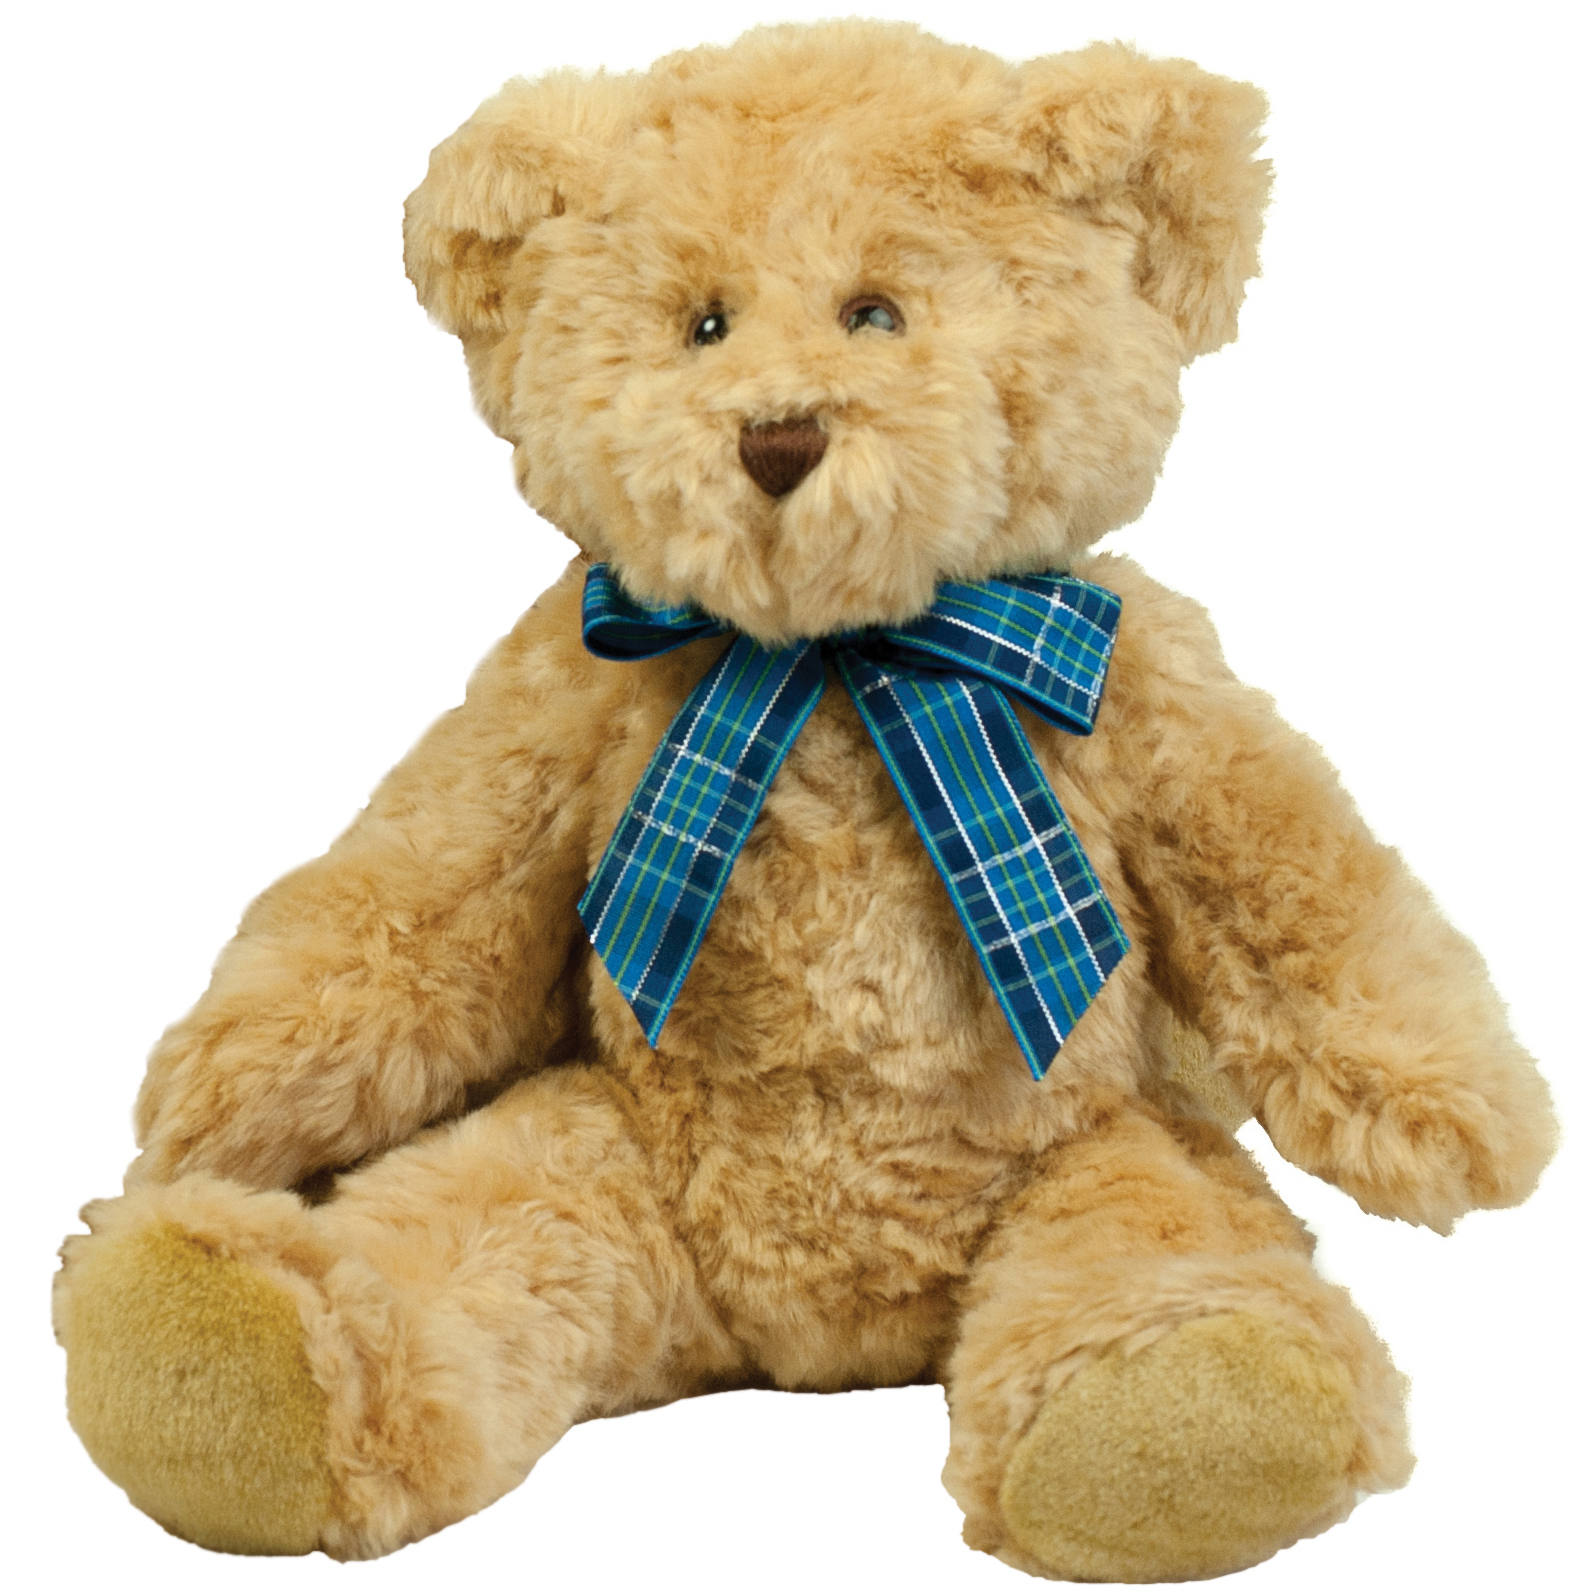 Mumbles Bracken Soft Plush Cuddly Teddy Bear In S, M And L